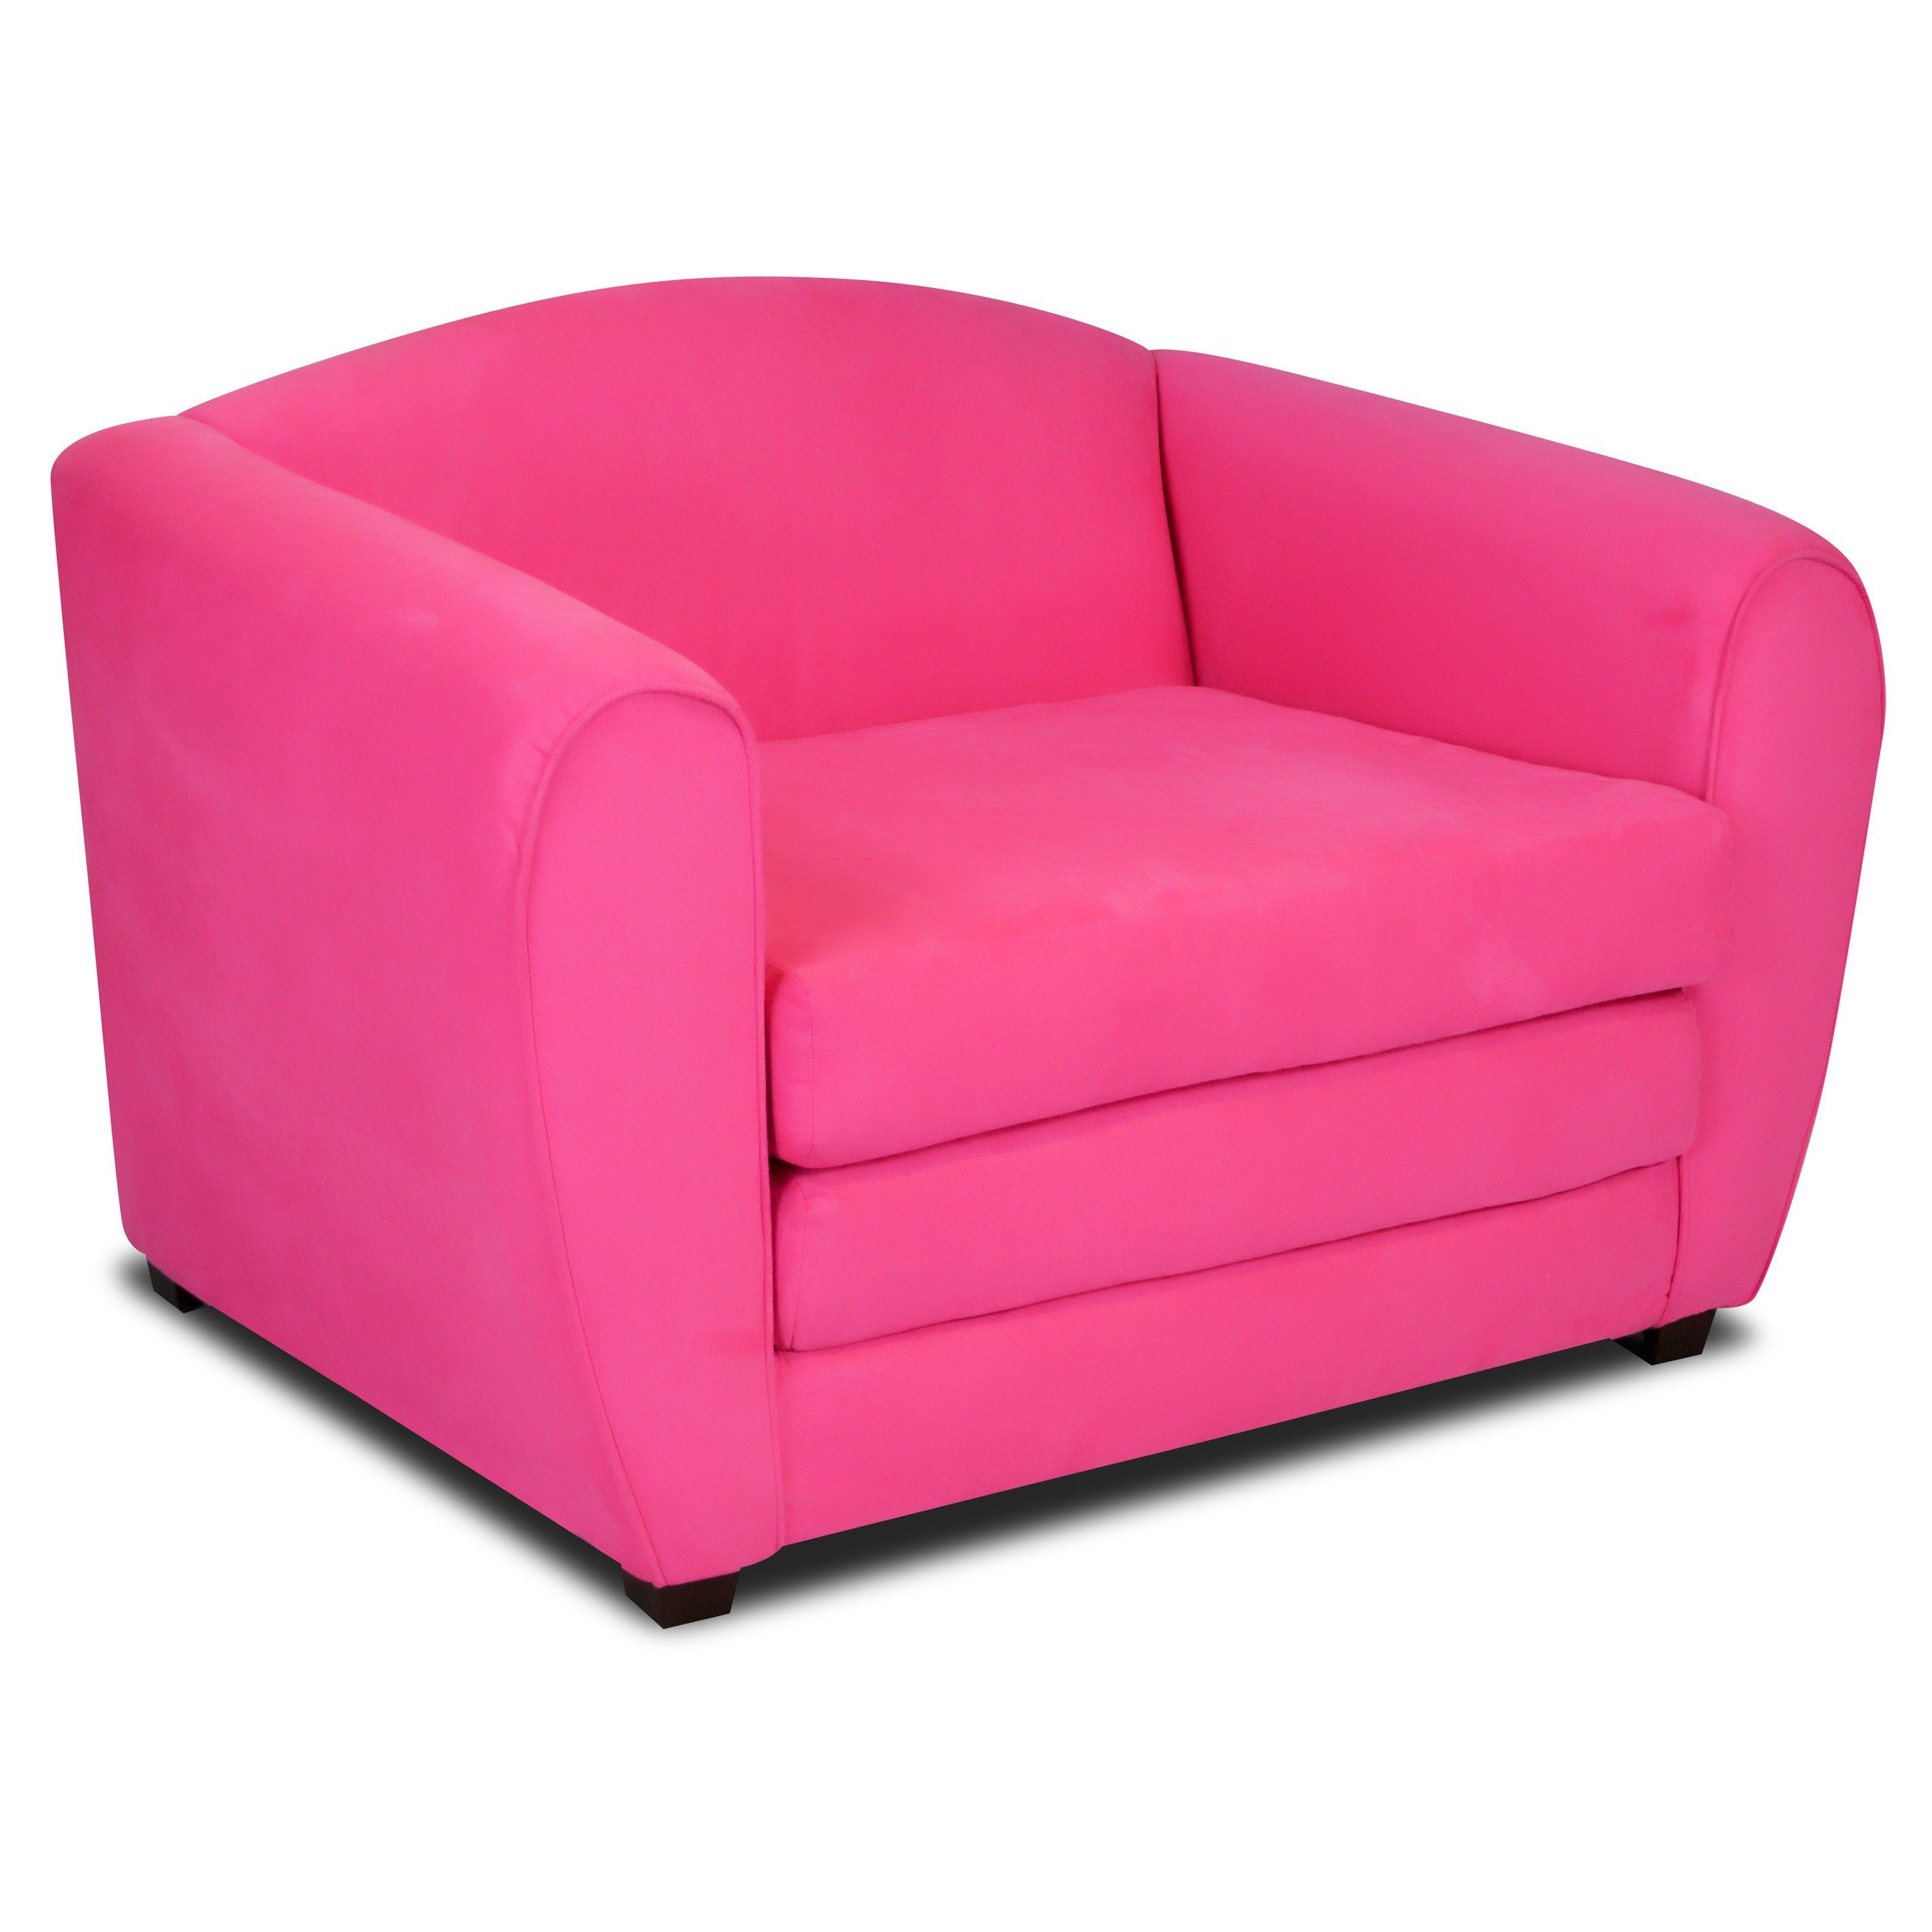 Totally Tween Chair Sleeper - Passion Pink Suede - 3021PP